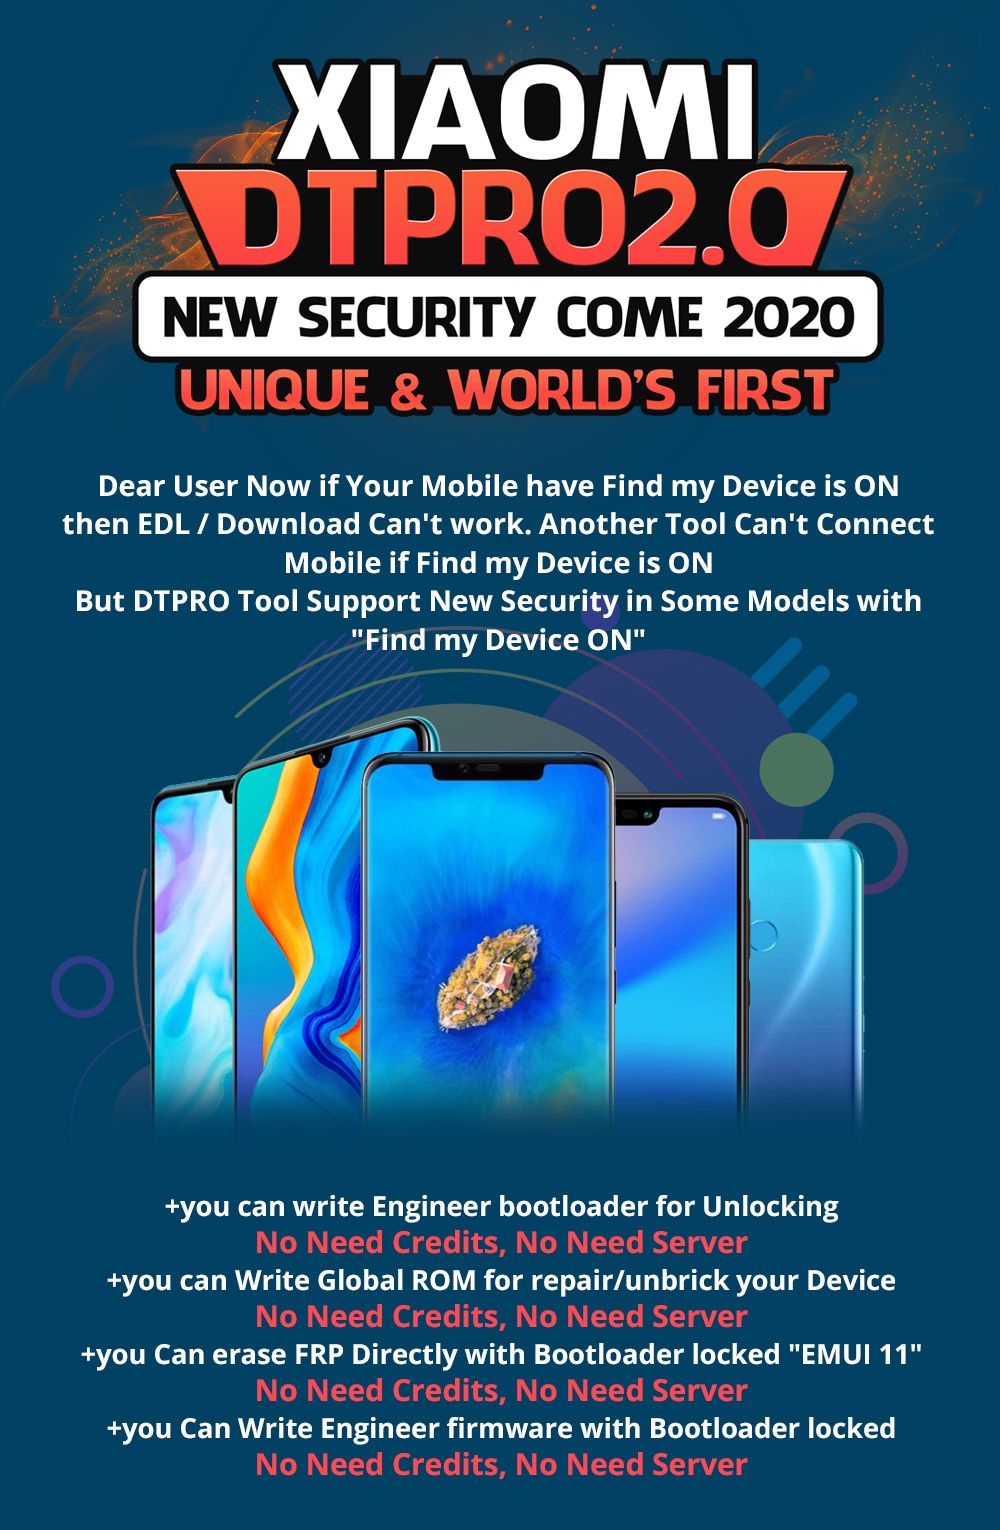 "Xiaomi New Security 2020 Come ""Devices with Find My Devices ON"" is Supported!! World First..."